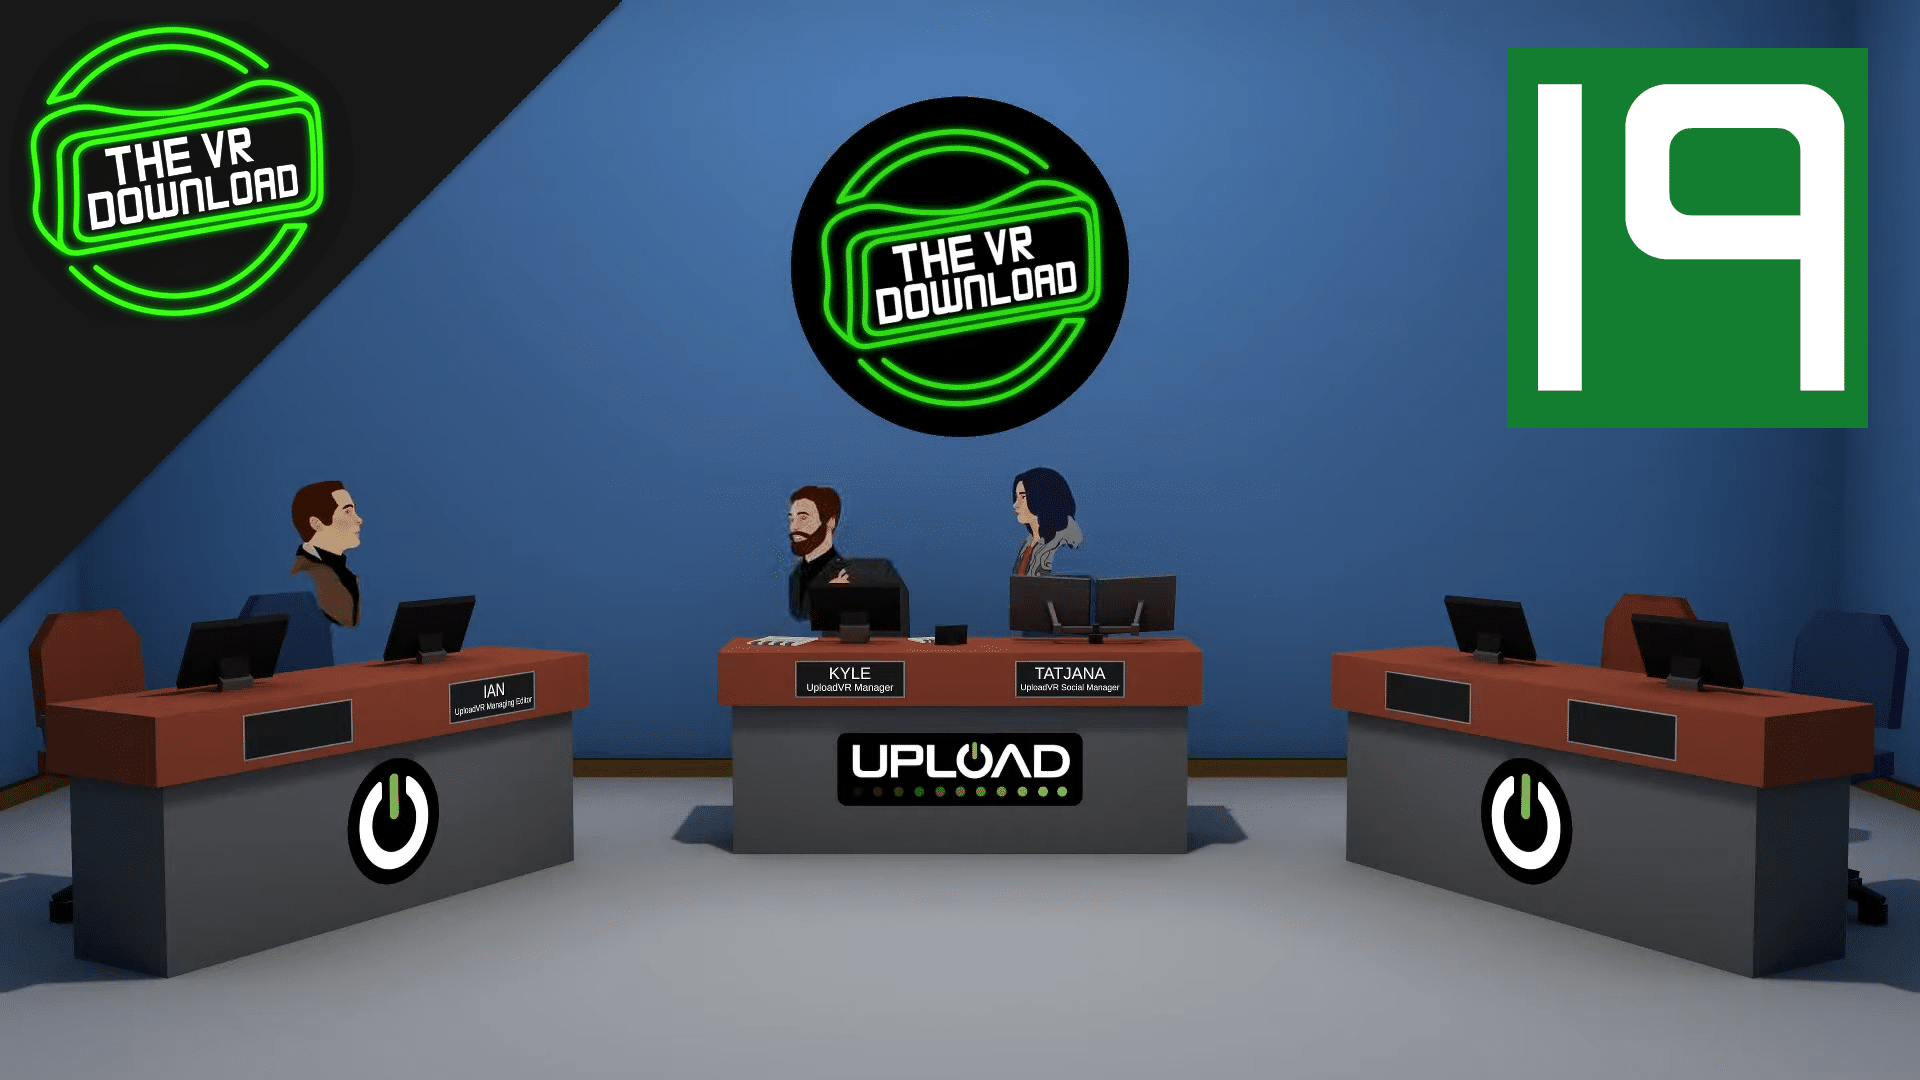 The VR Download EP19